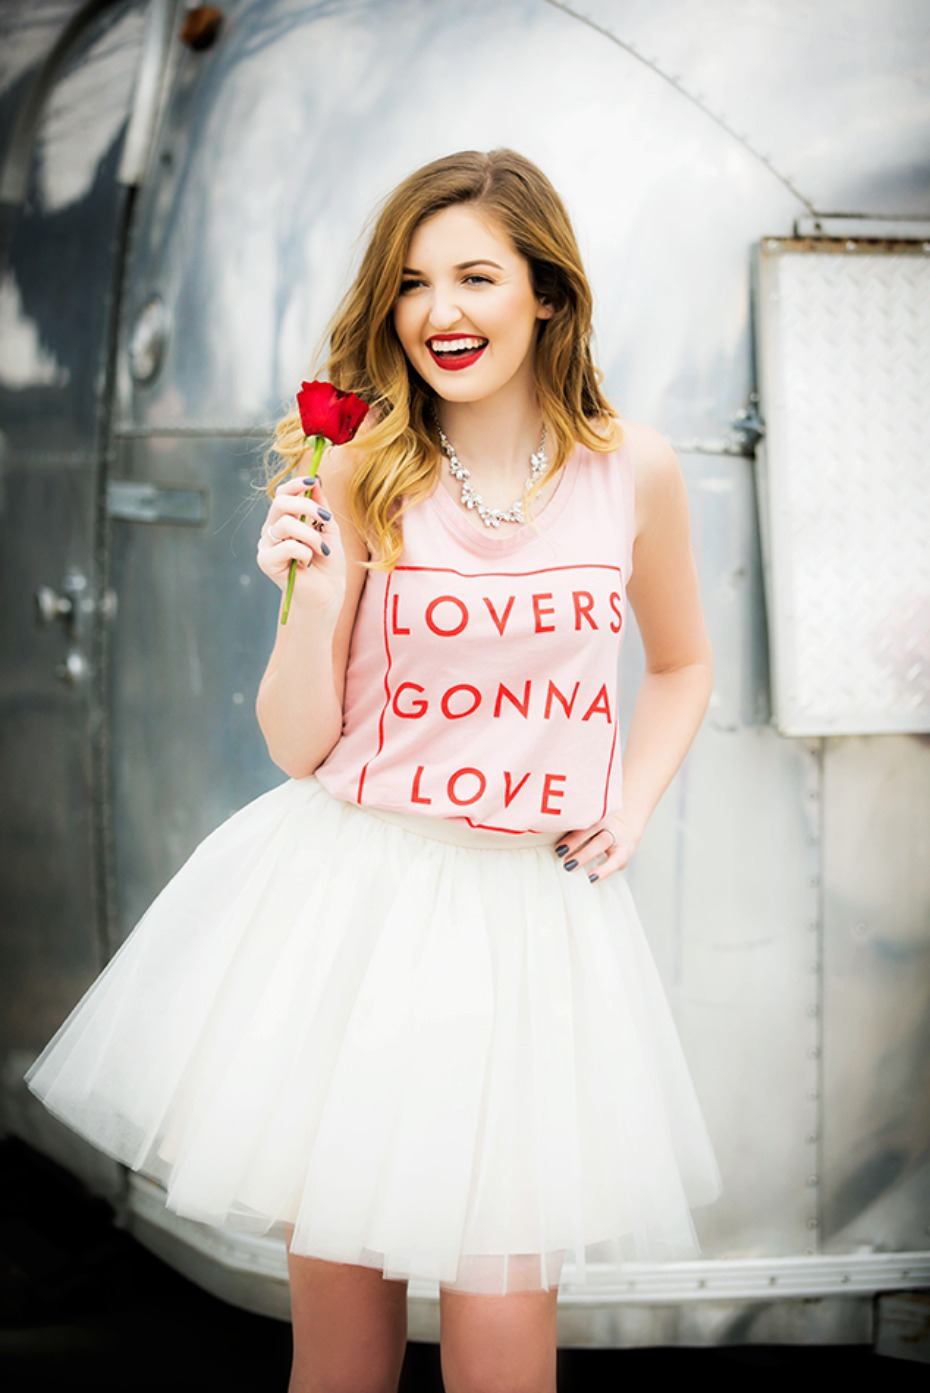 Lovers gonna love this bridal shower outfit from Bliss Tulle